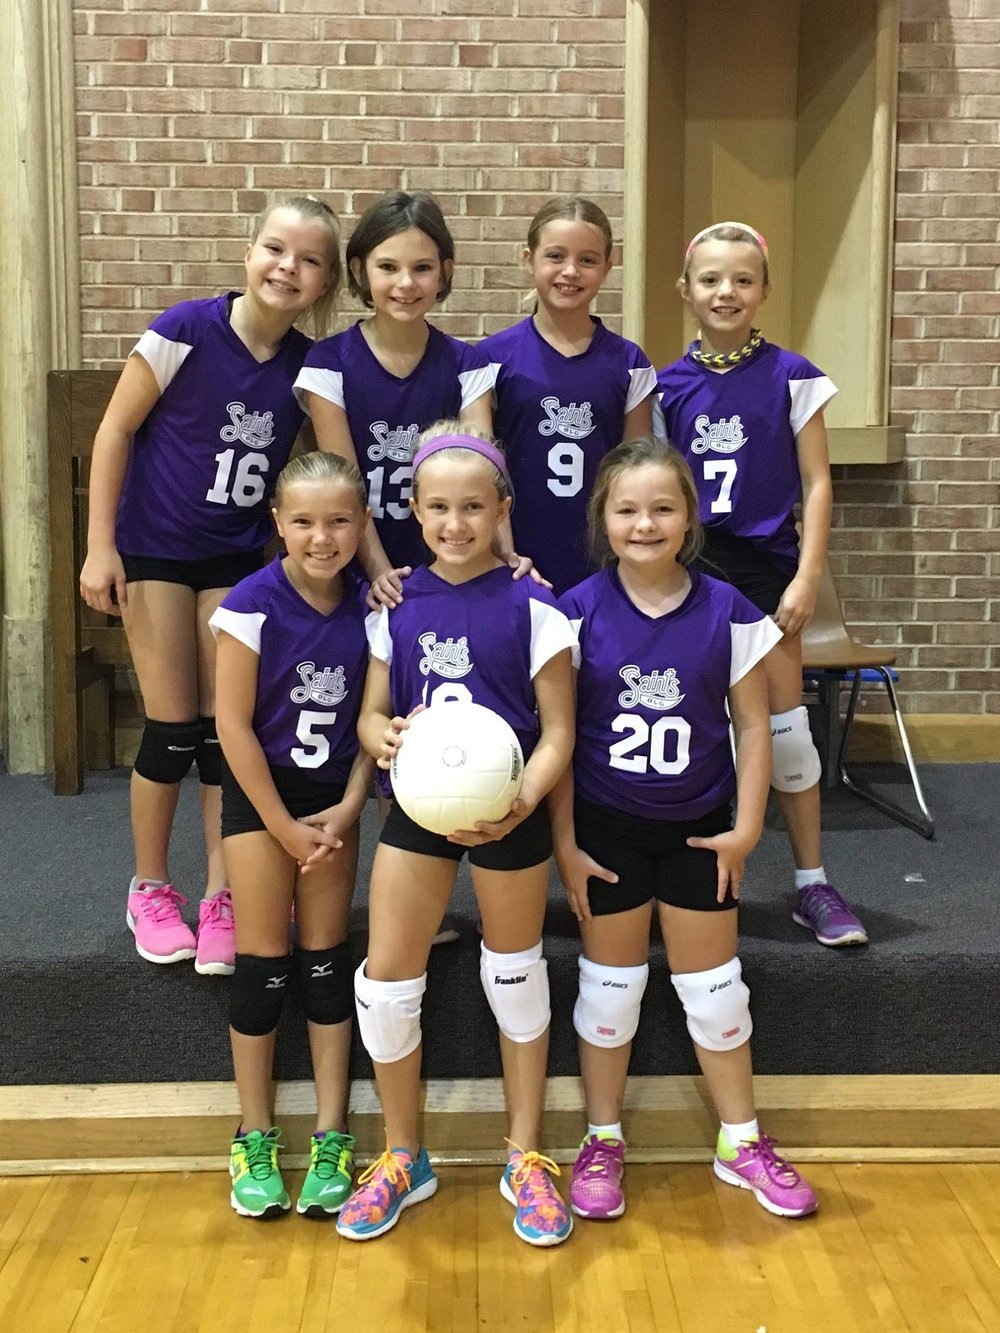 Our Lady of Grace School Volleyball